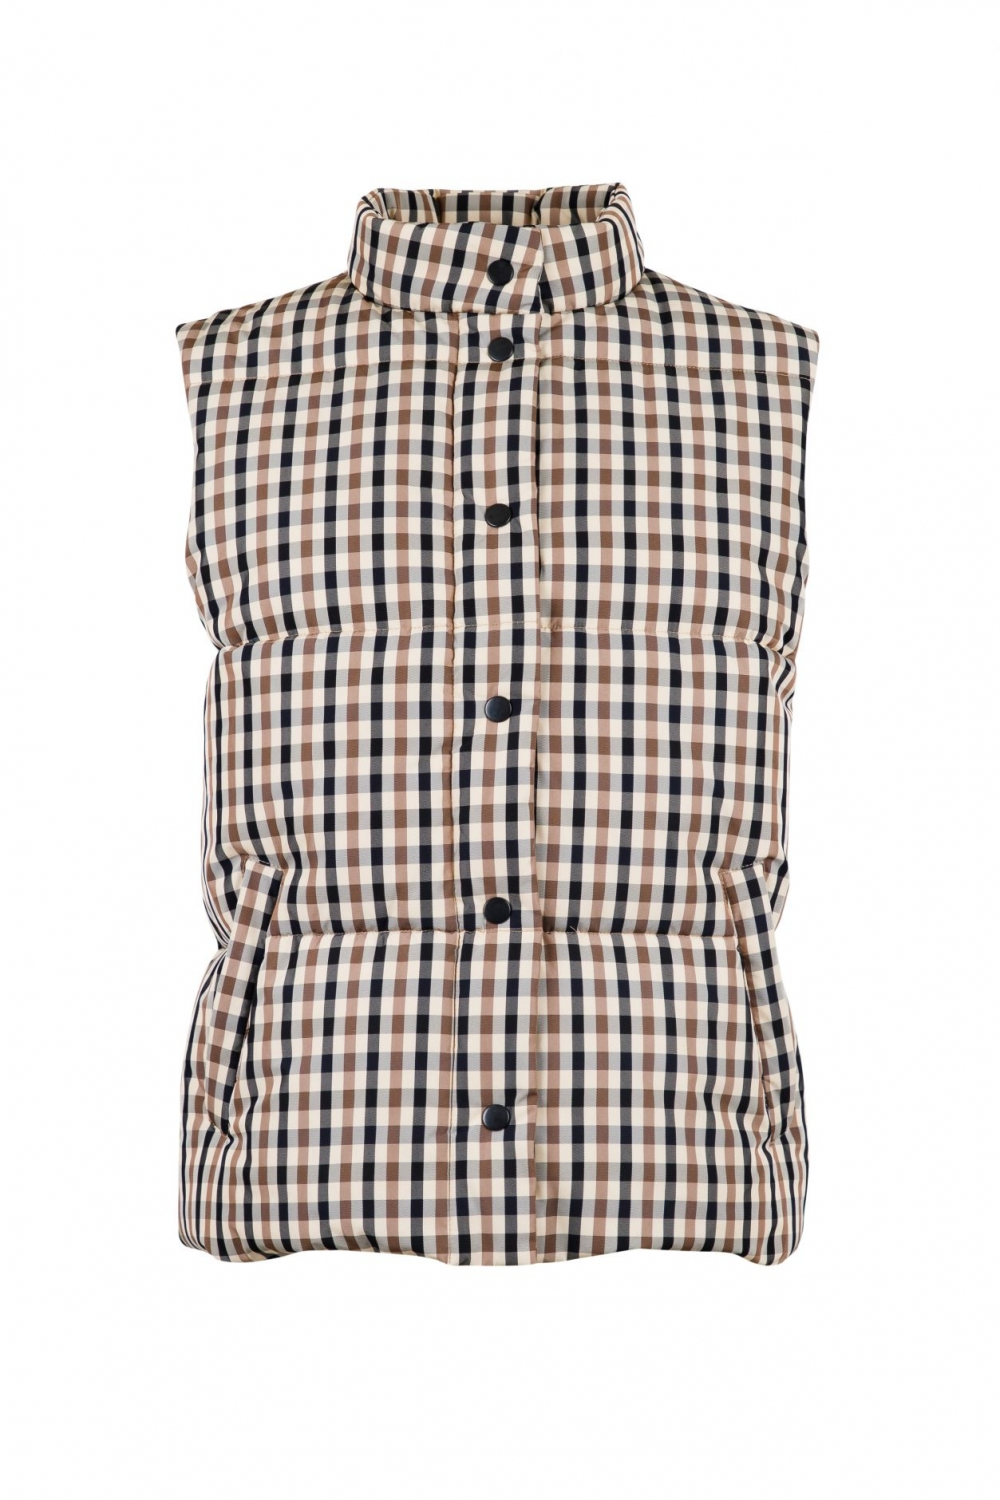 Neo Noir Frankie Check Puffer Waistcoat - Brown Check